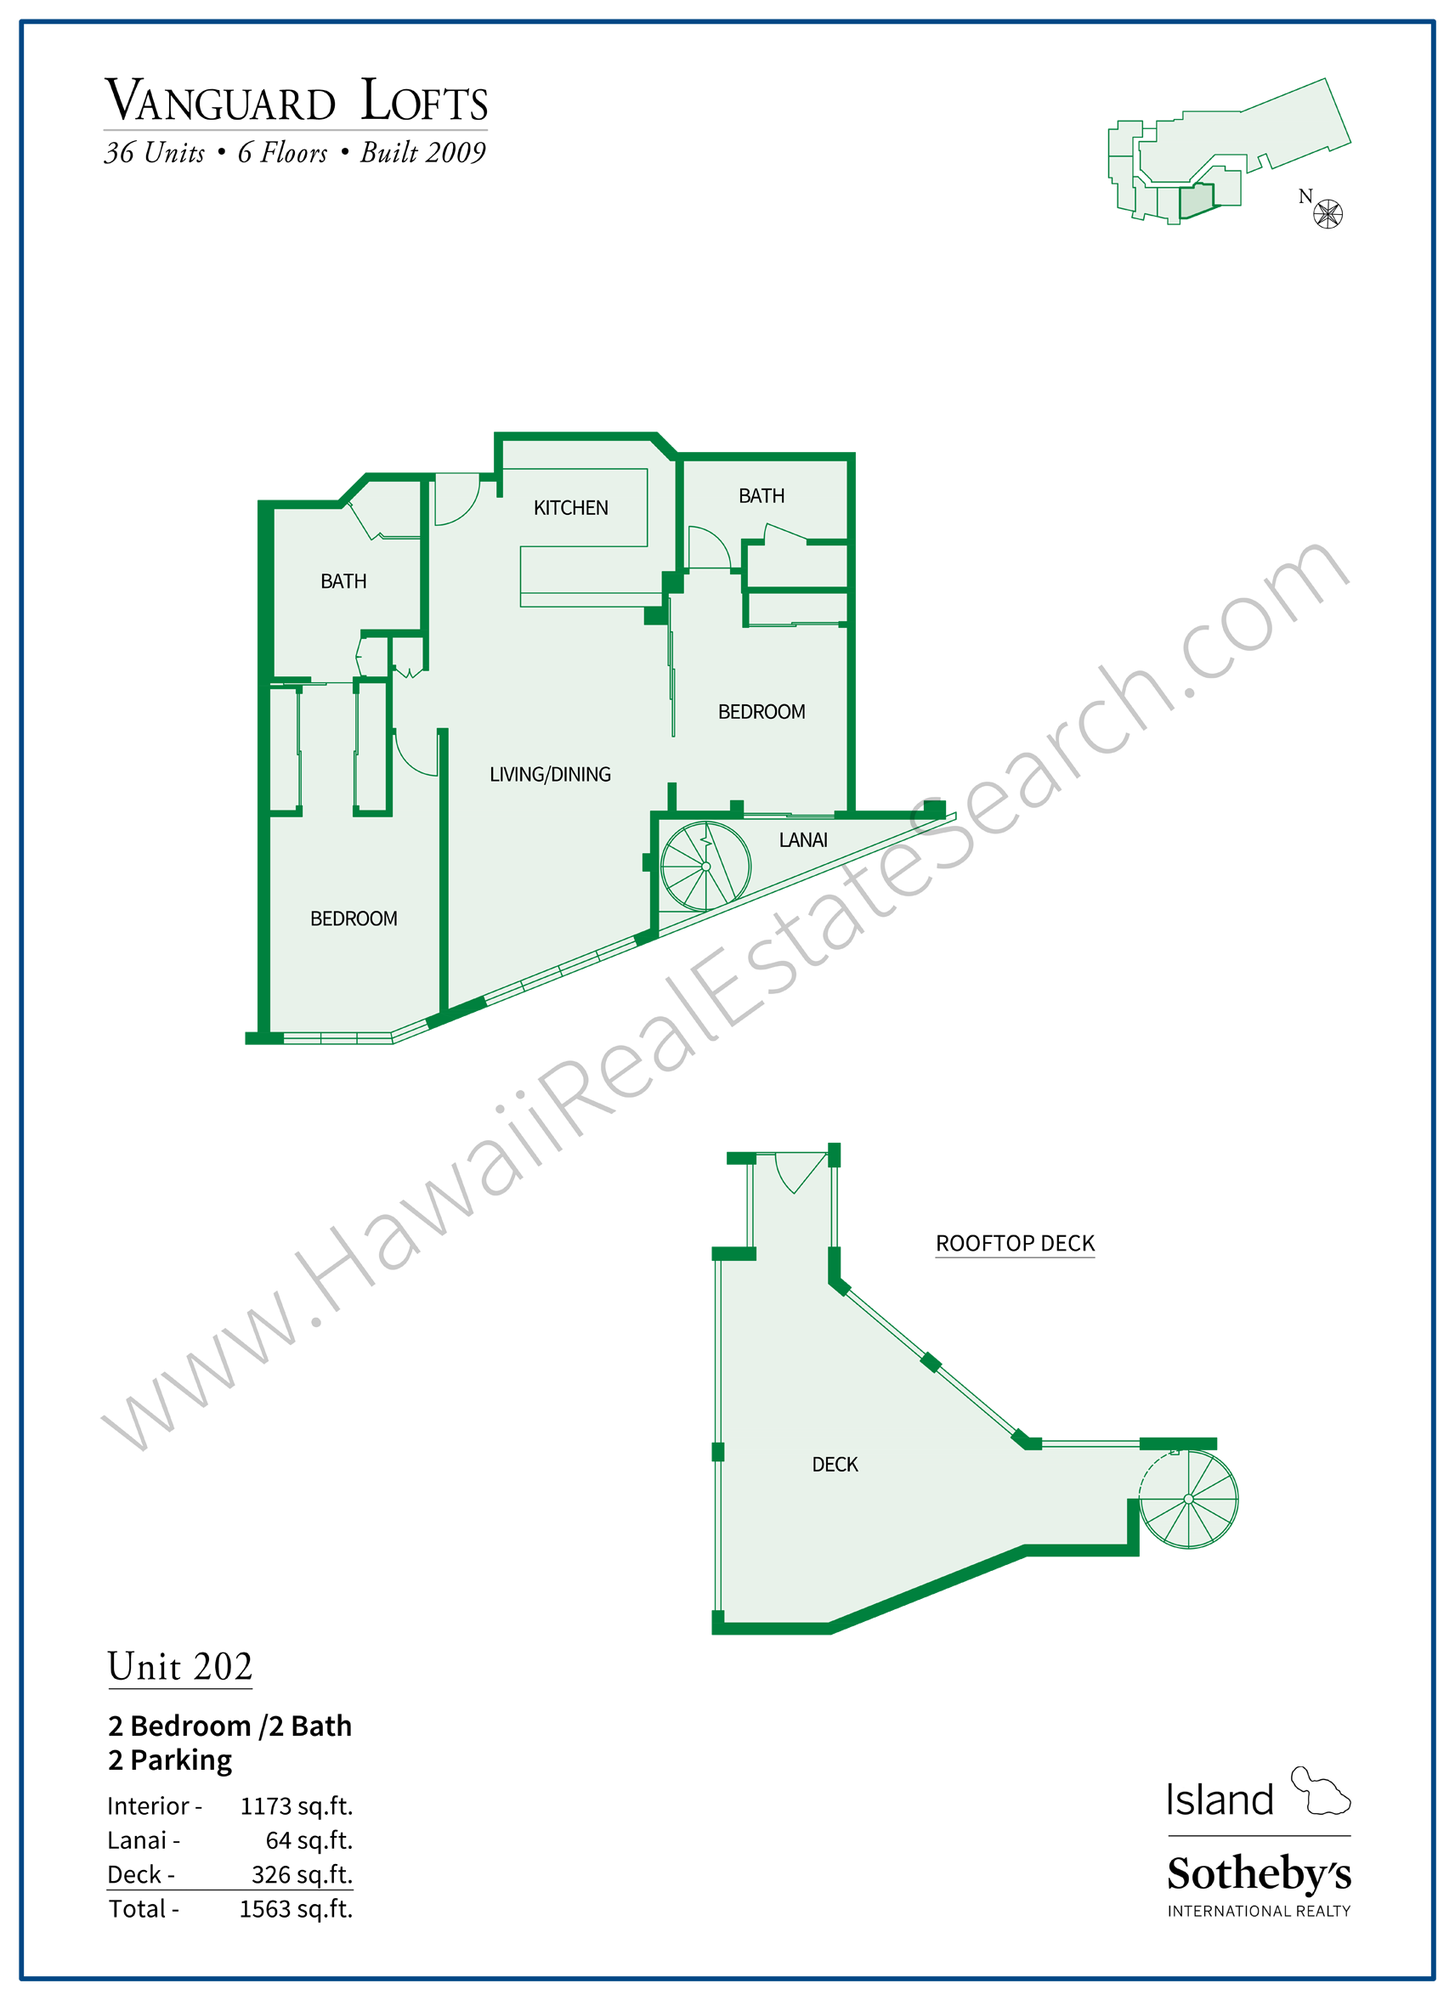 vanguard lofts floor plan 202